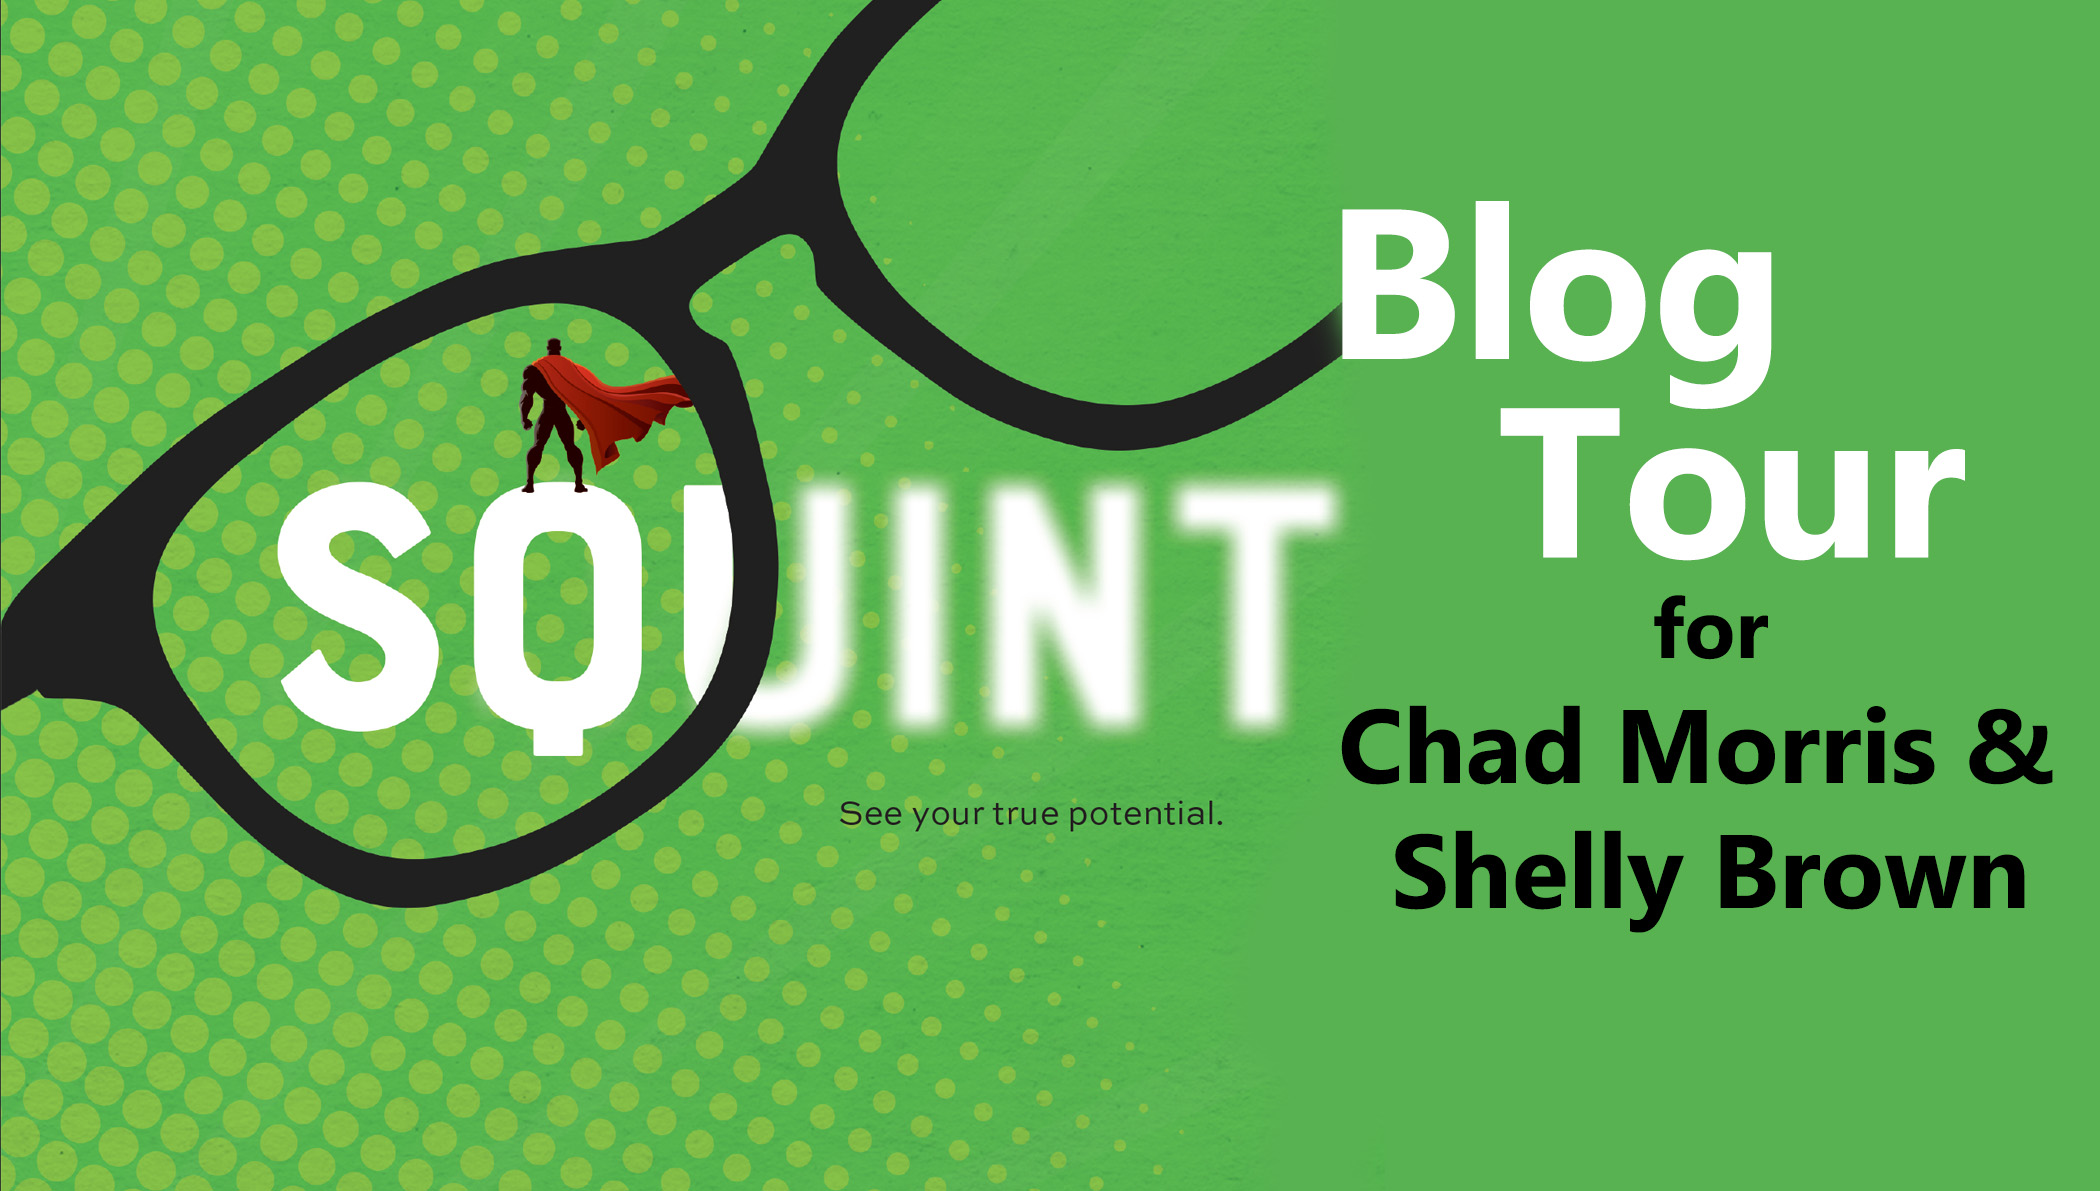 Review: Squint by Chad Morris and Shelly Brown